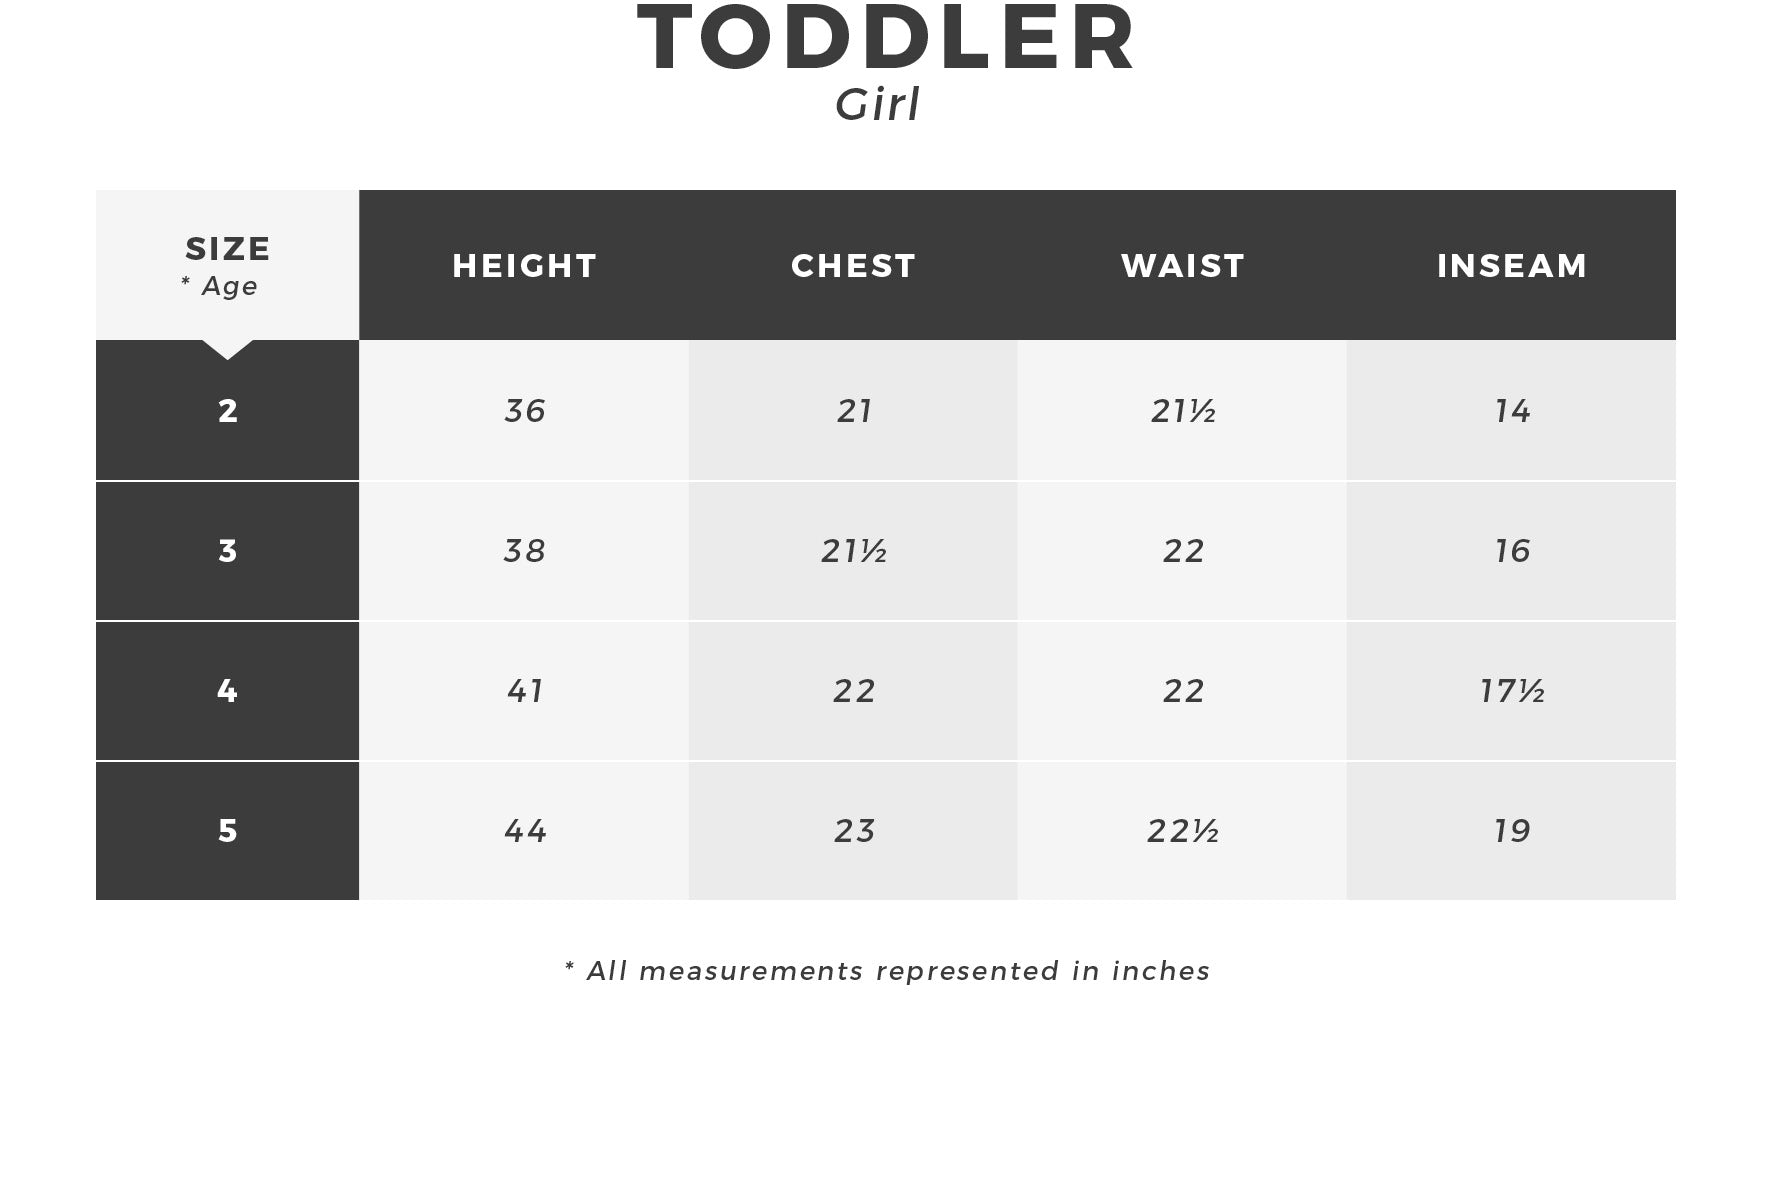 Toddler Girl Size Chart